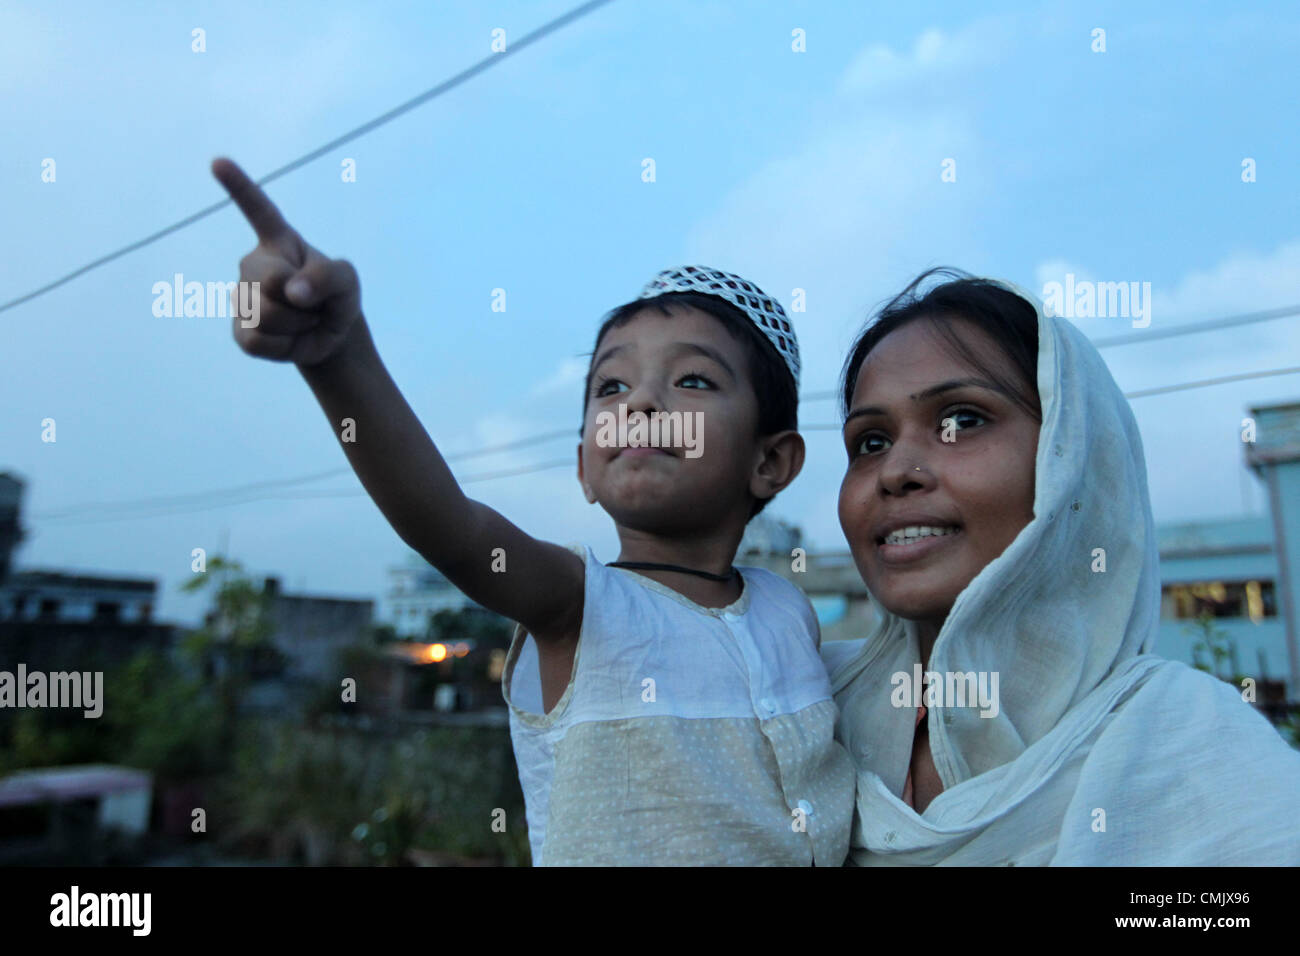 Aug. 19, 2012 - Dhaka, Bangladesh - Aug. 18, 2012 - Dhaka, Bangladesh - Bangladeshi Muslim families looks at the - Stock Image